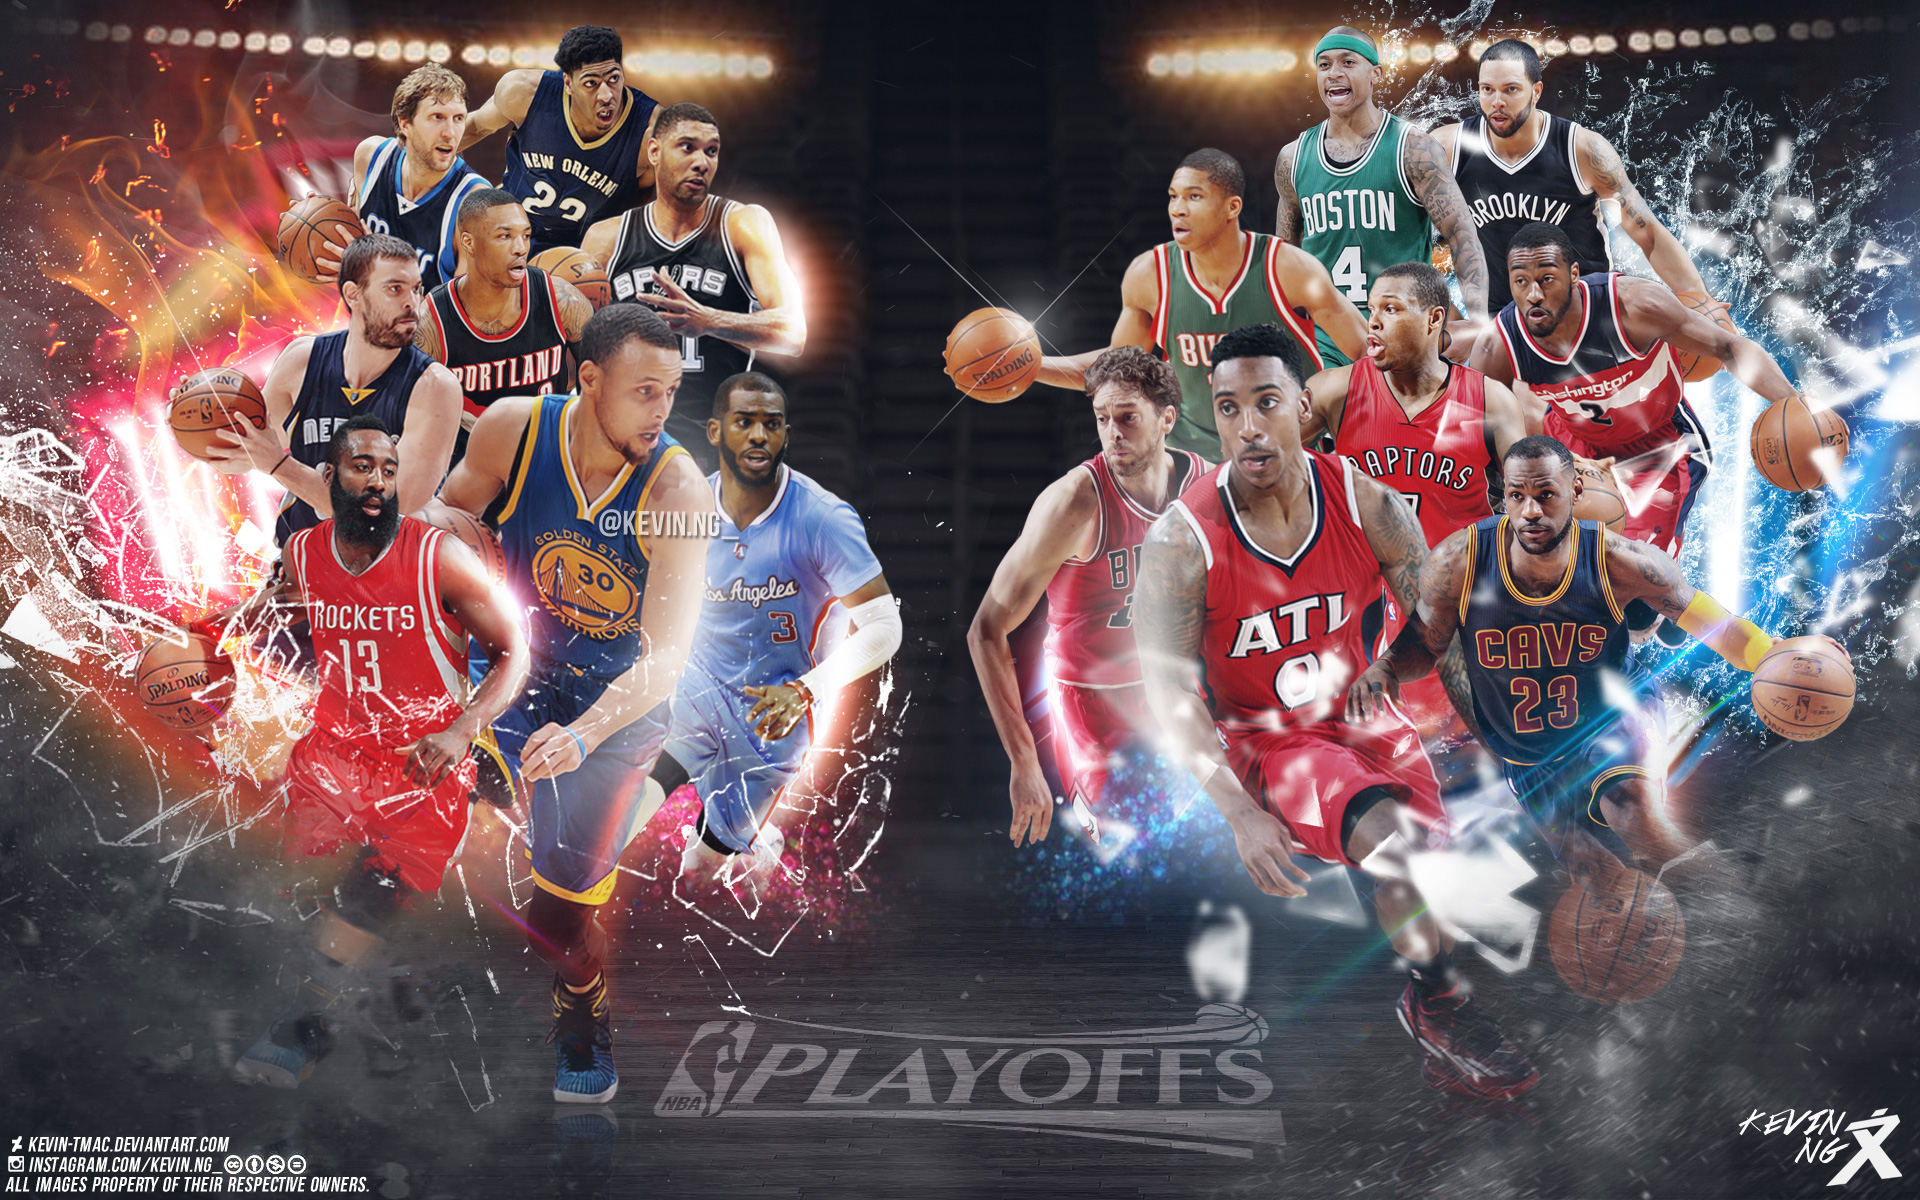 2015 Nba Playoffs Stars 1920 1200 Wallpaper Basketball